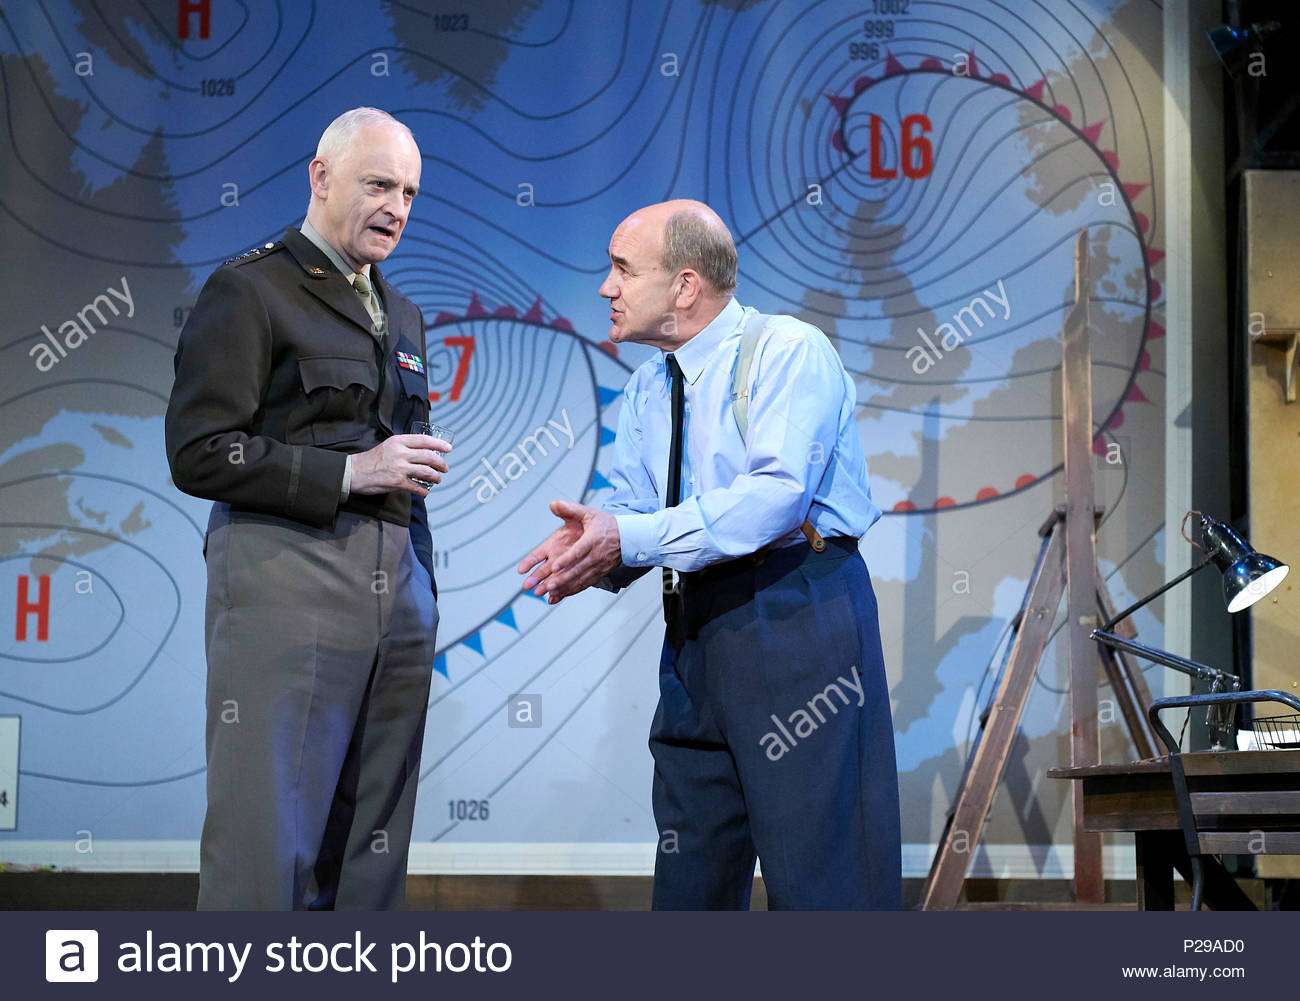 Pressure by David Haig, directed by John Dove.With Malcolm Sinclair as General Eisenhower, David Haig as Group Captain James Stagg. Opens at The Ambassadors Theatre on 14/6/18. CREDIT Geraint Lewis EDITORIAL USE ONLY - Stock Image